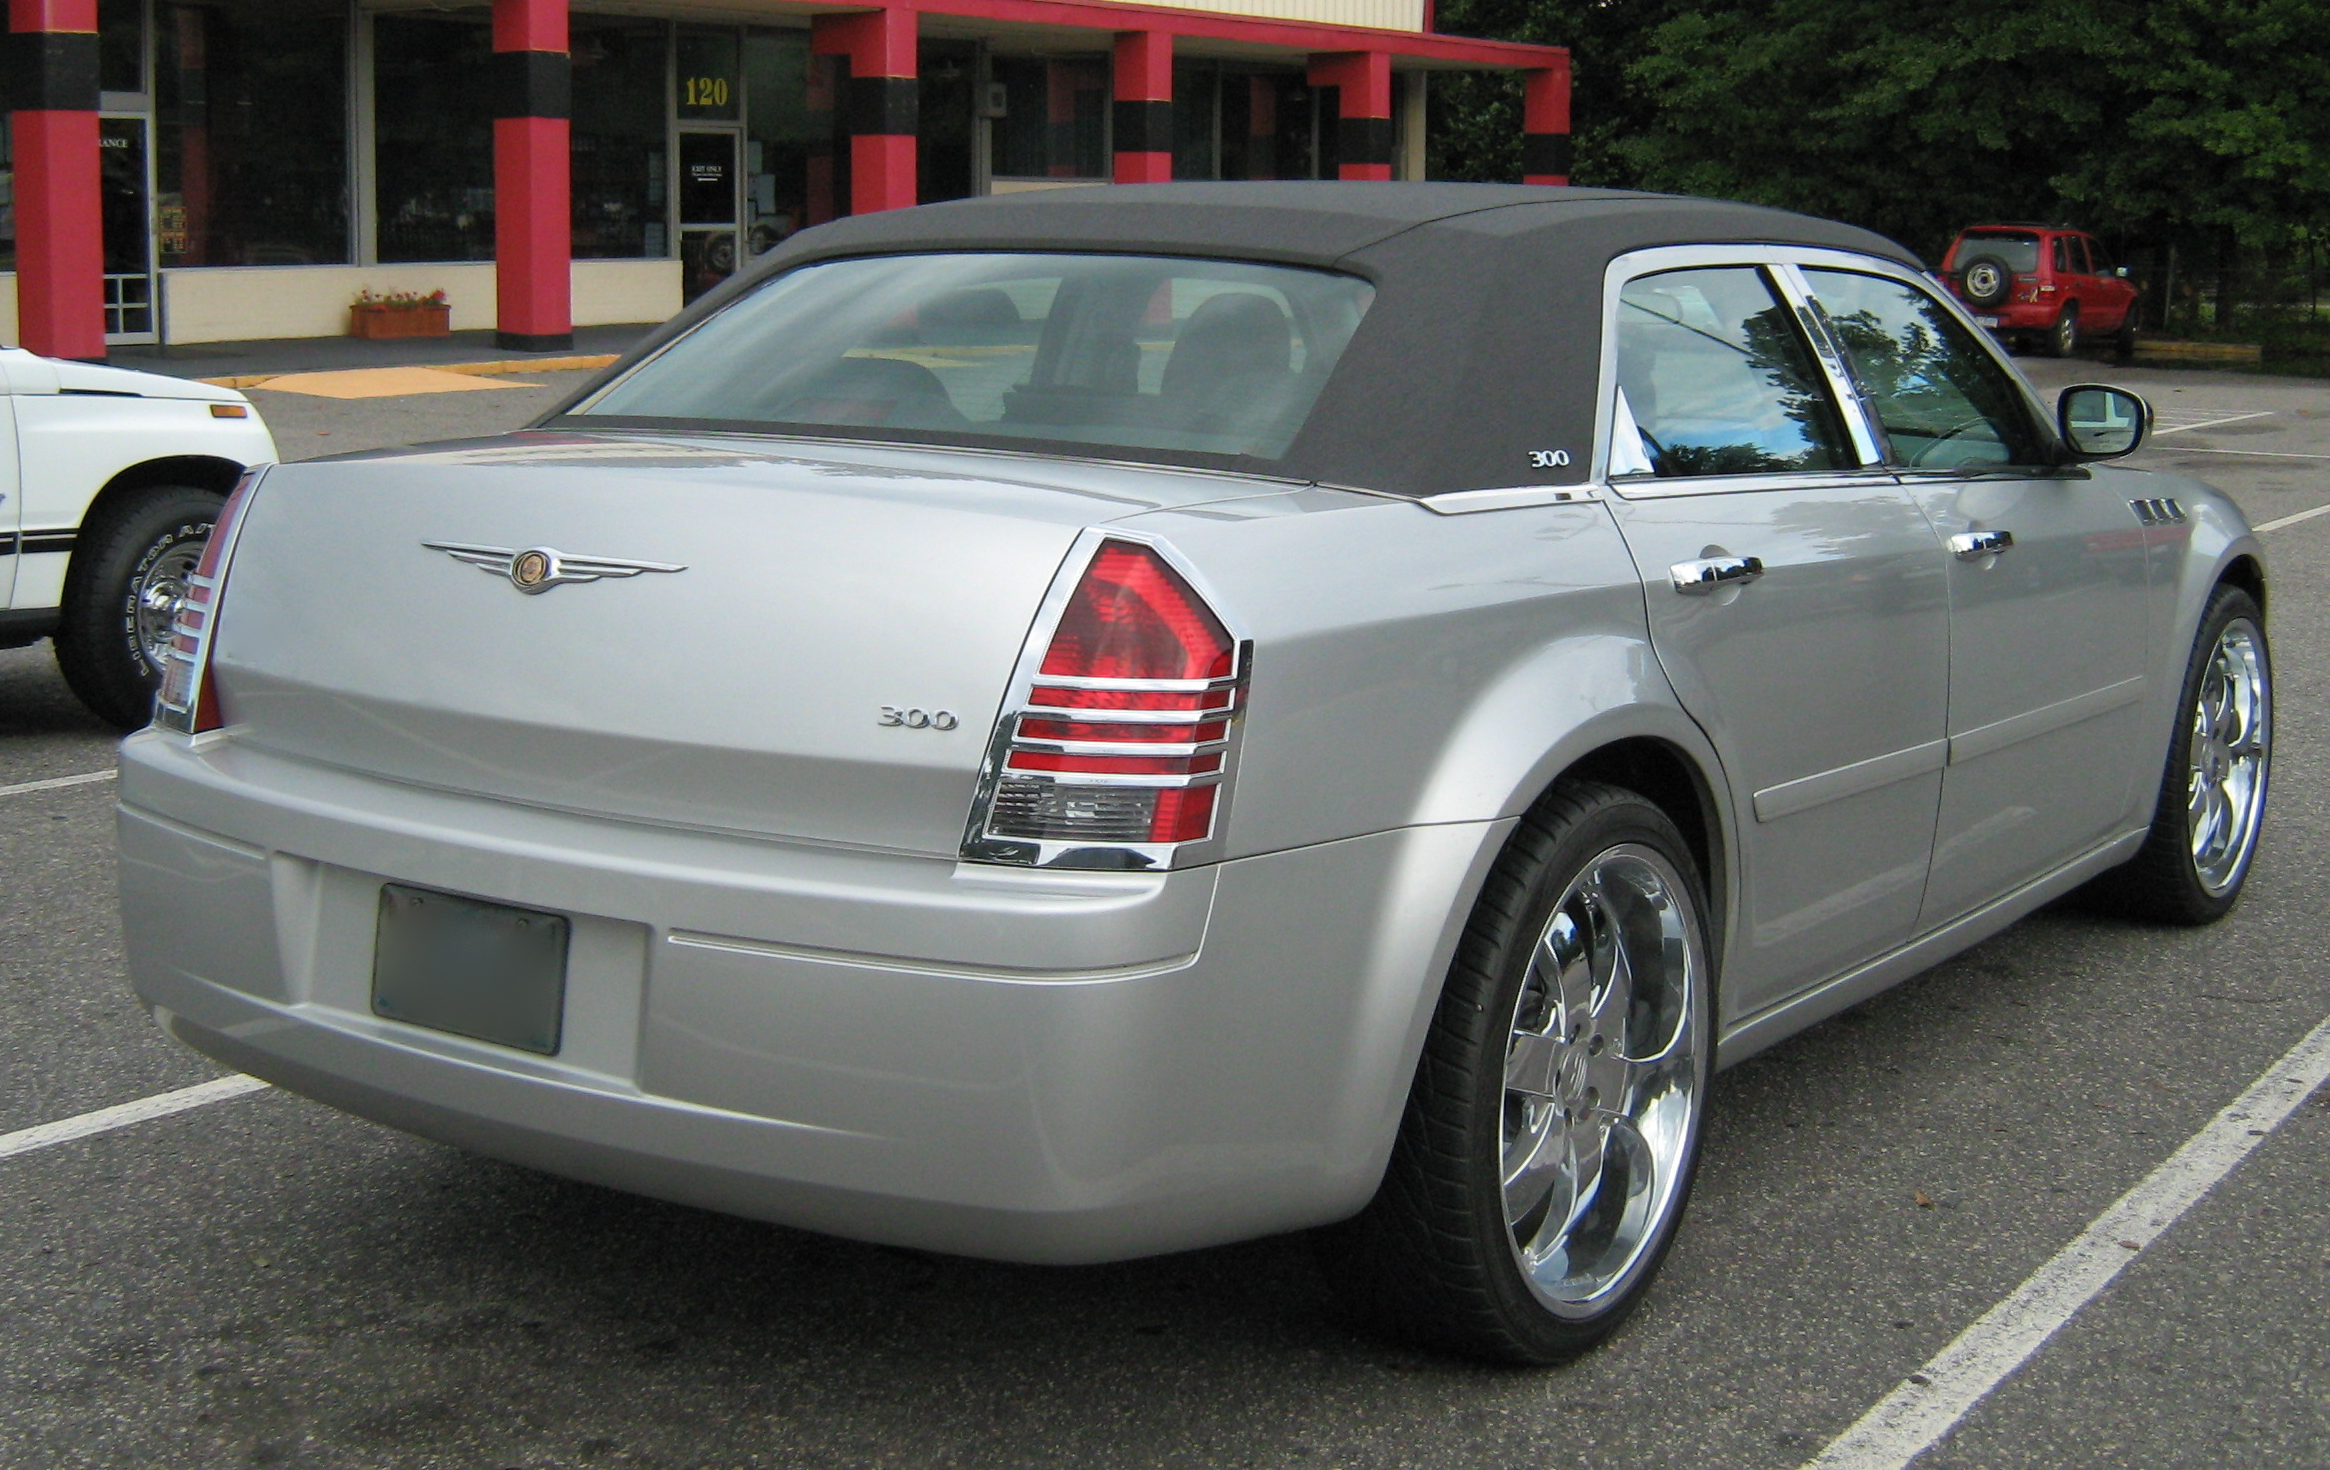 File Chrysler 300 Customized And Vinyl Roof Jpg